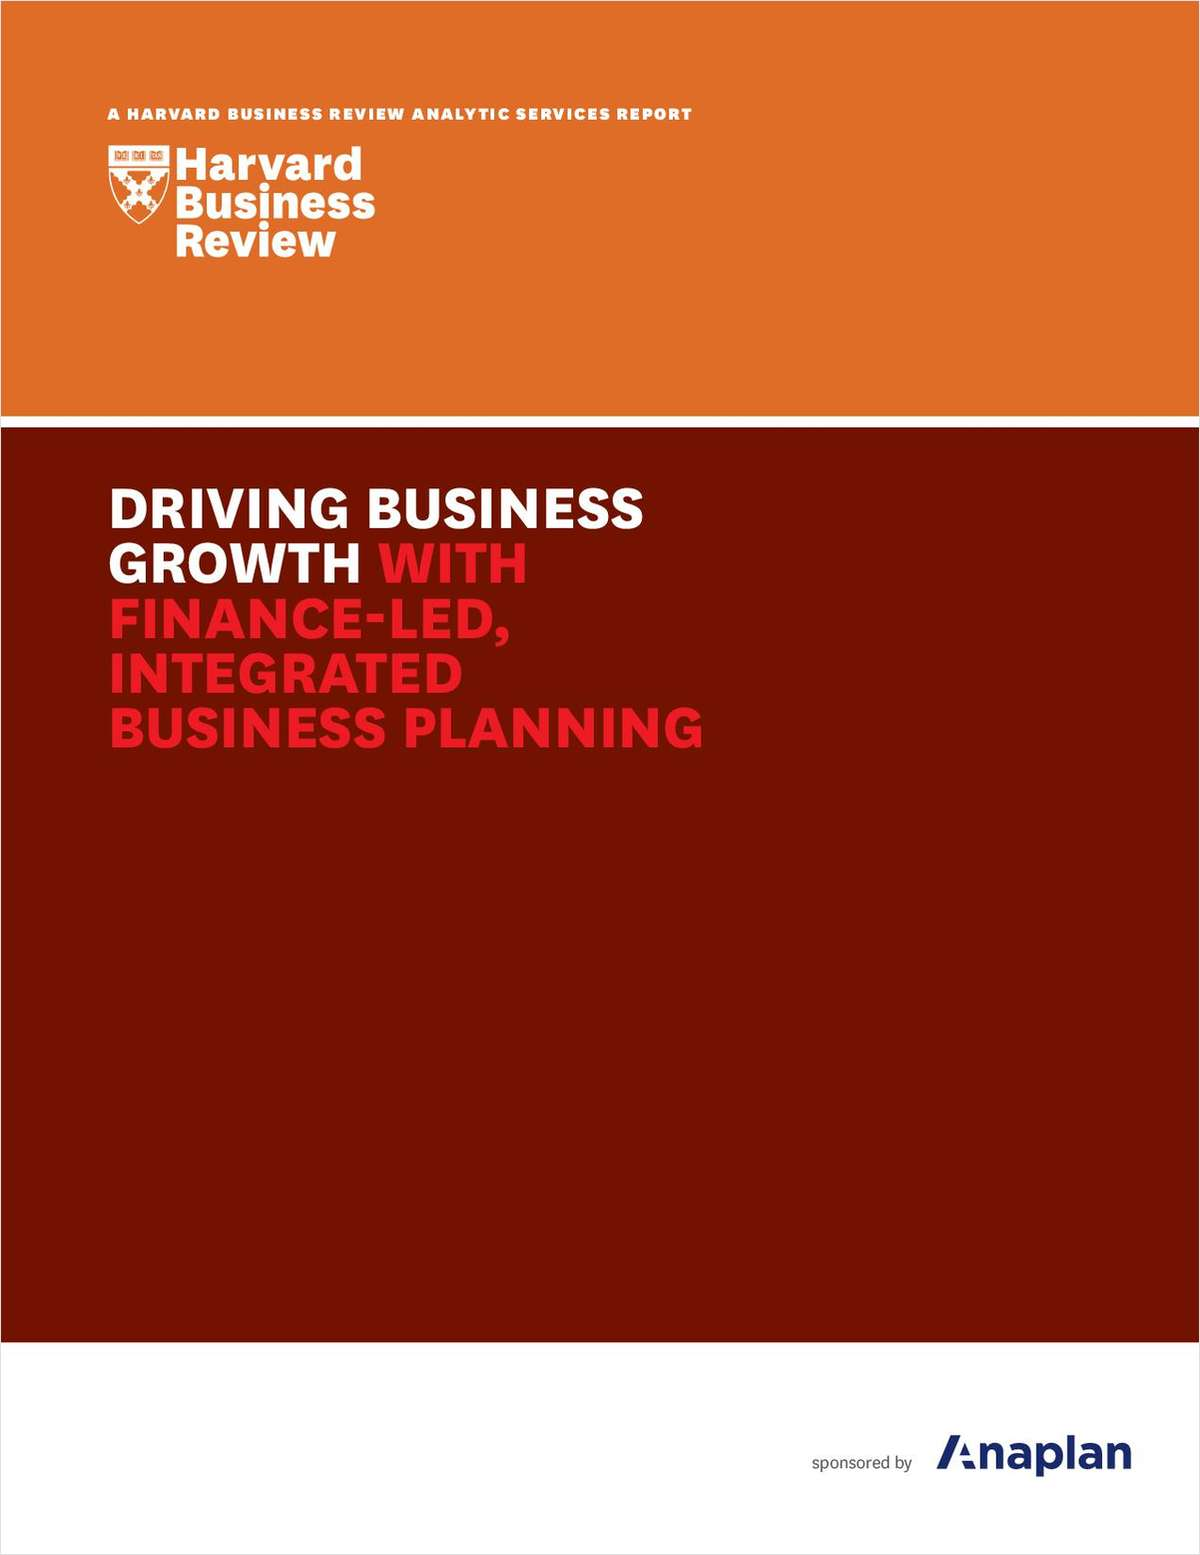 Driving Business Growth with Finance-Led, Integrated Planning